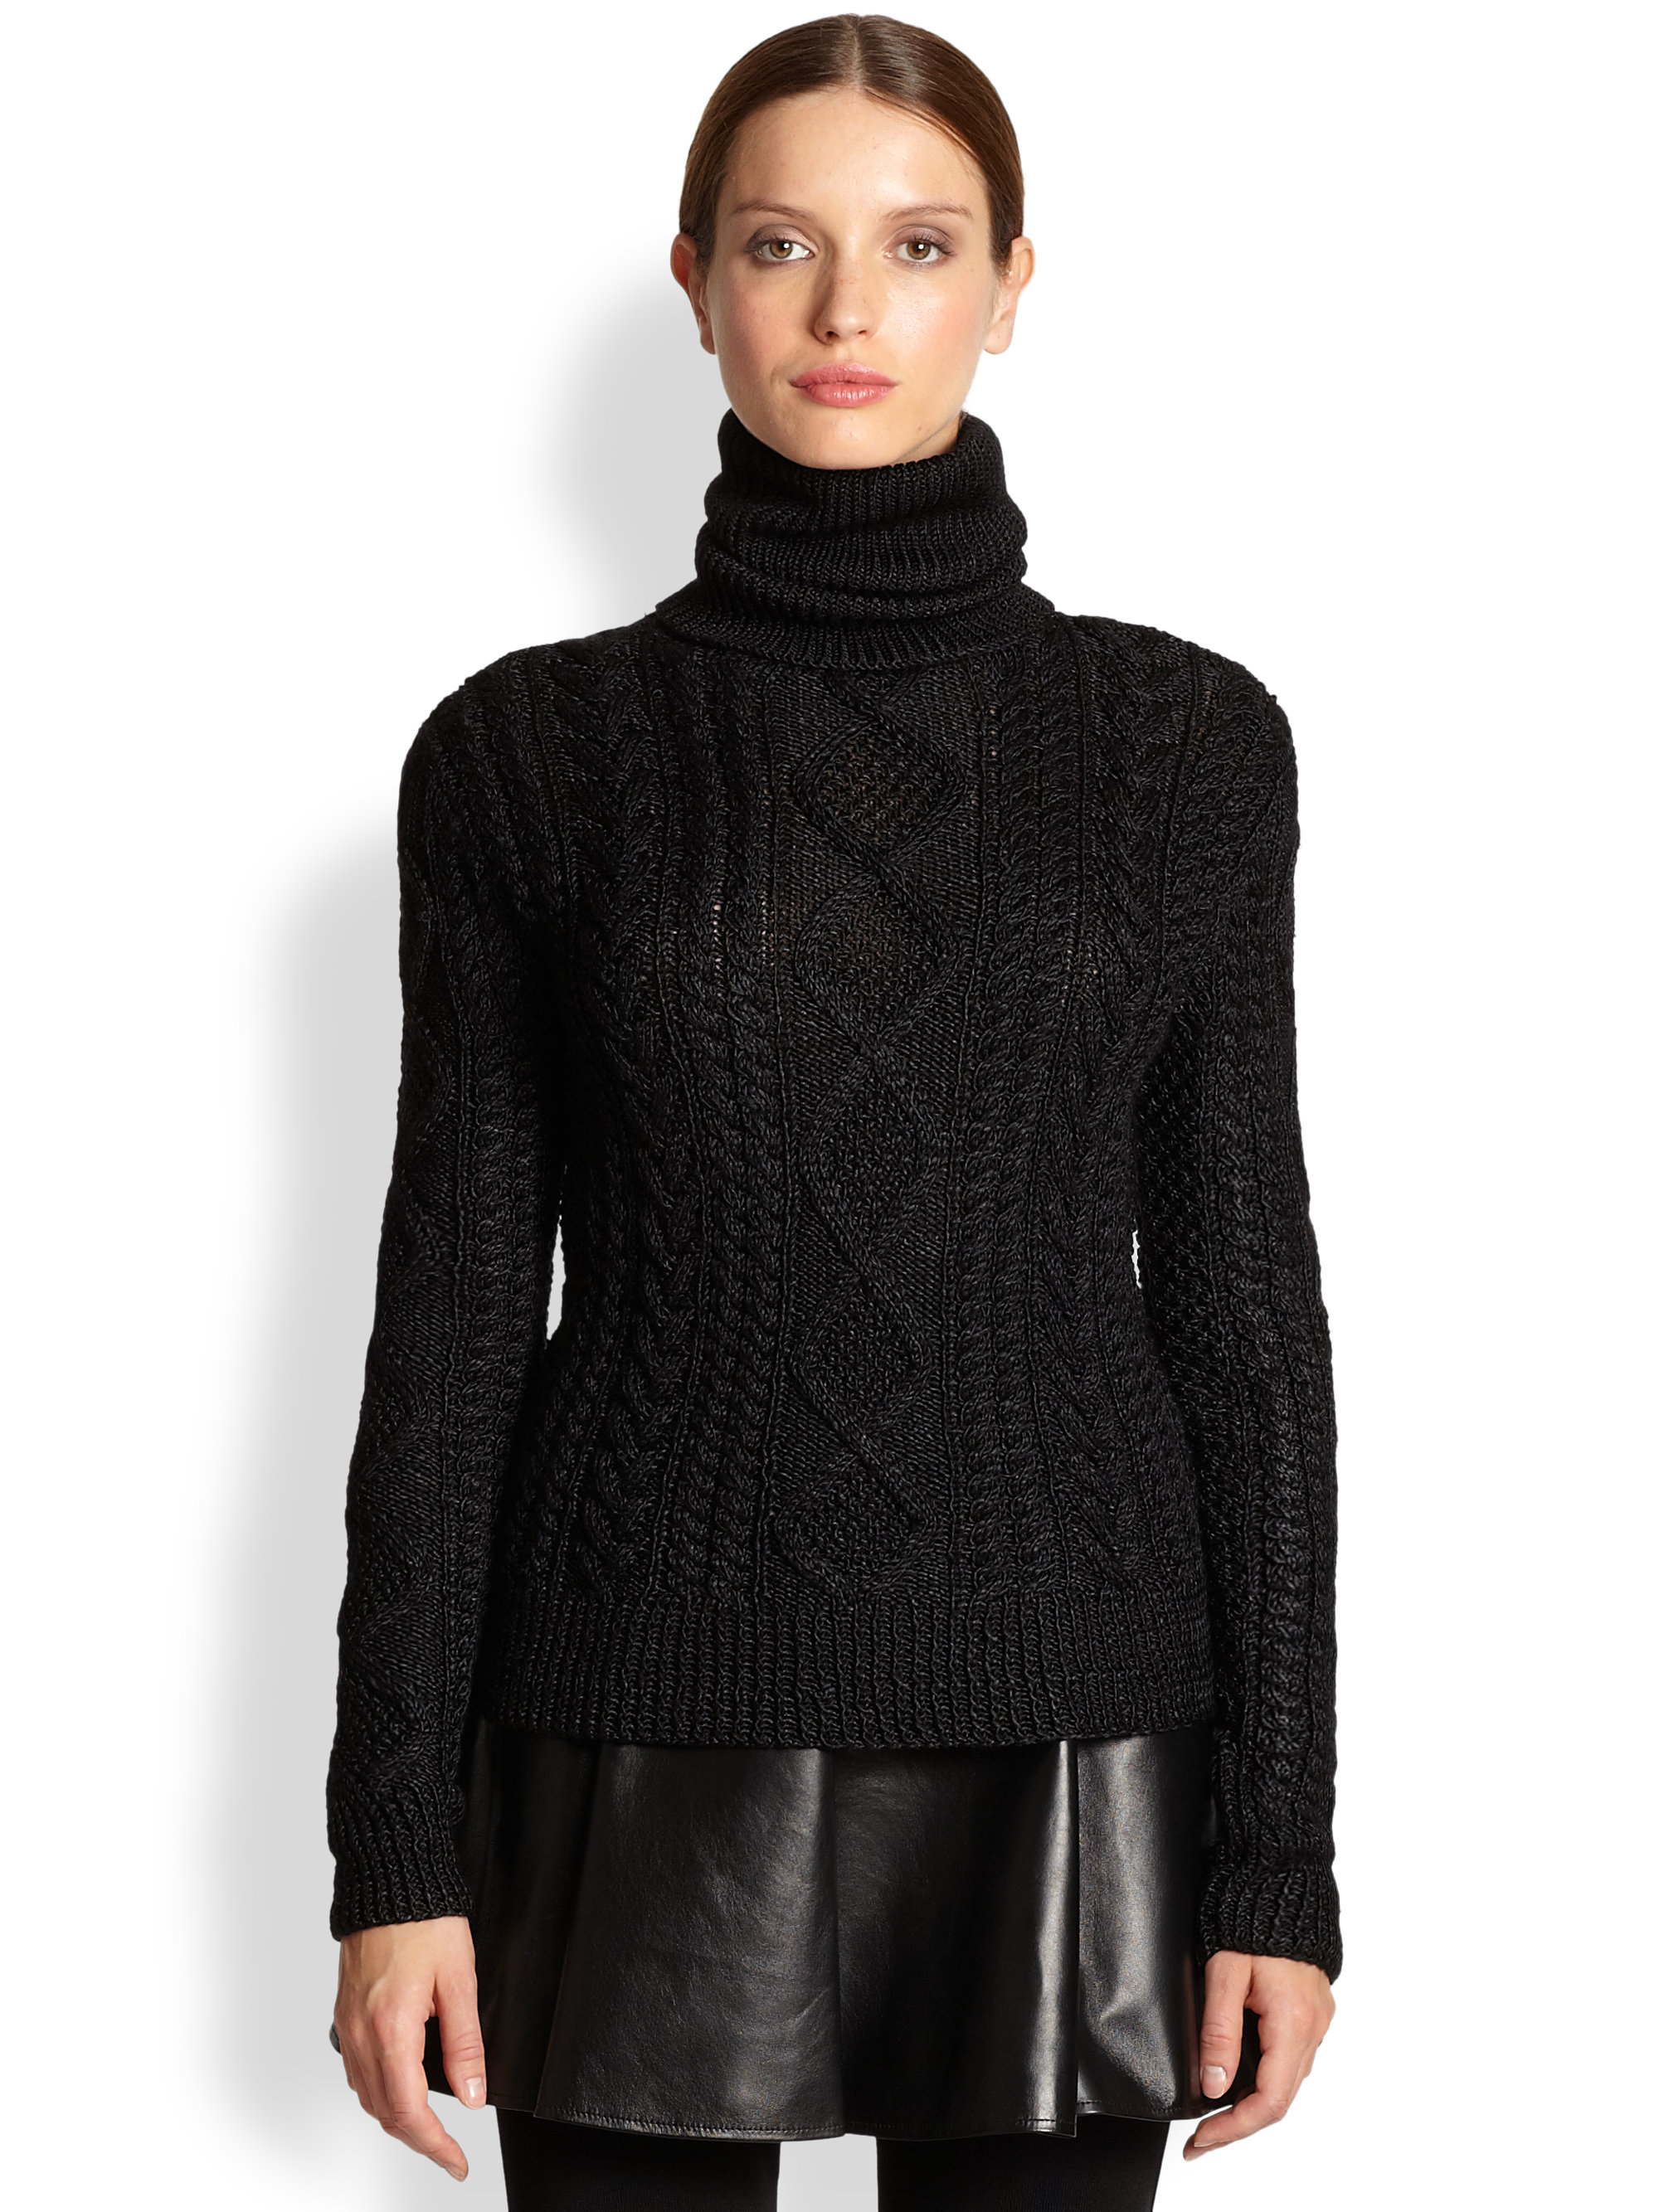 Ralph lauren collection Silk Cashmere Cableknit Turtleneck Sweater ...